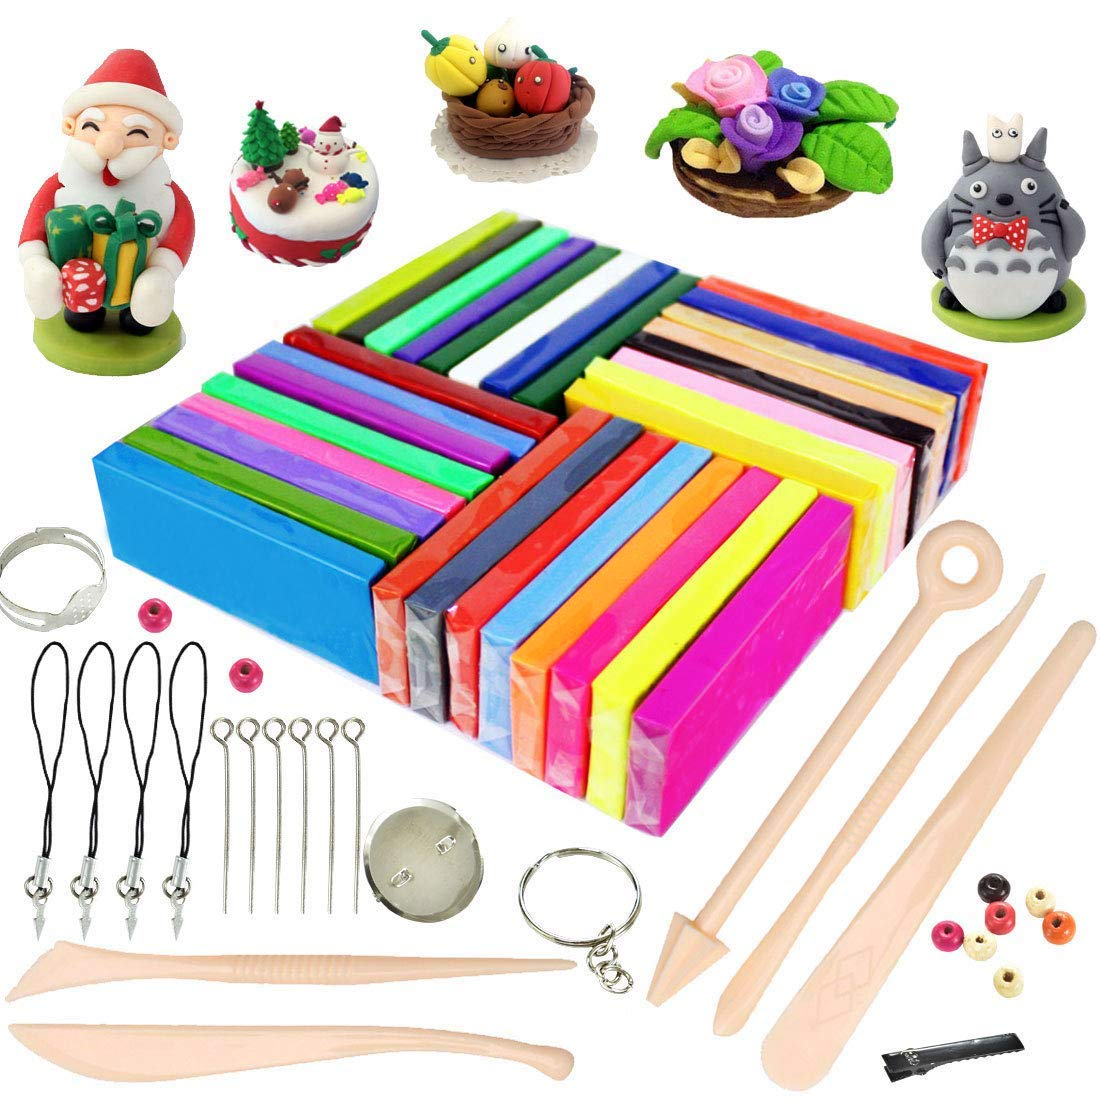 ifergoo Polymer Clay, 32 Blocks Colored Oven Bake Modelling Clay, DIY Colored Clay Kit with Modeling Tools, Tutorials and Accessories, 1.73lb